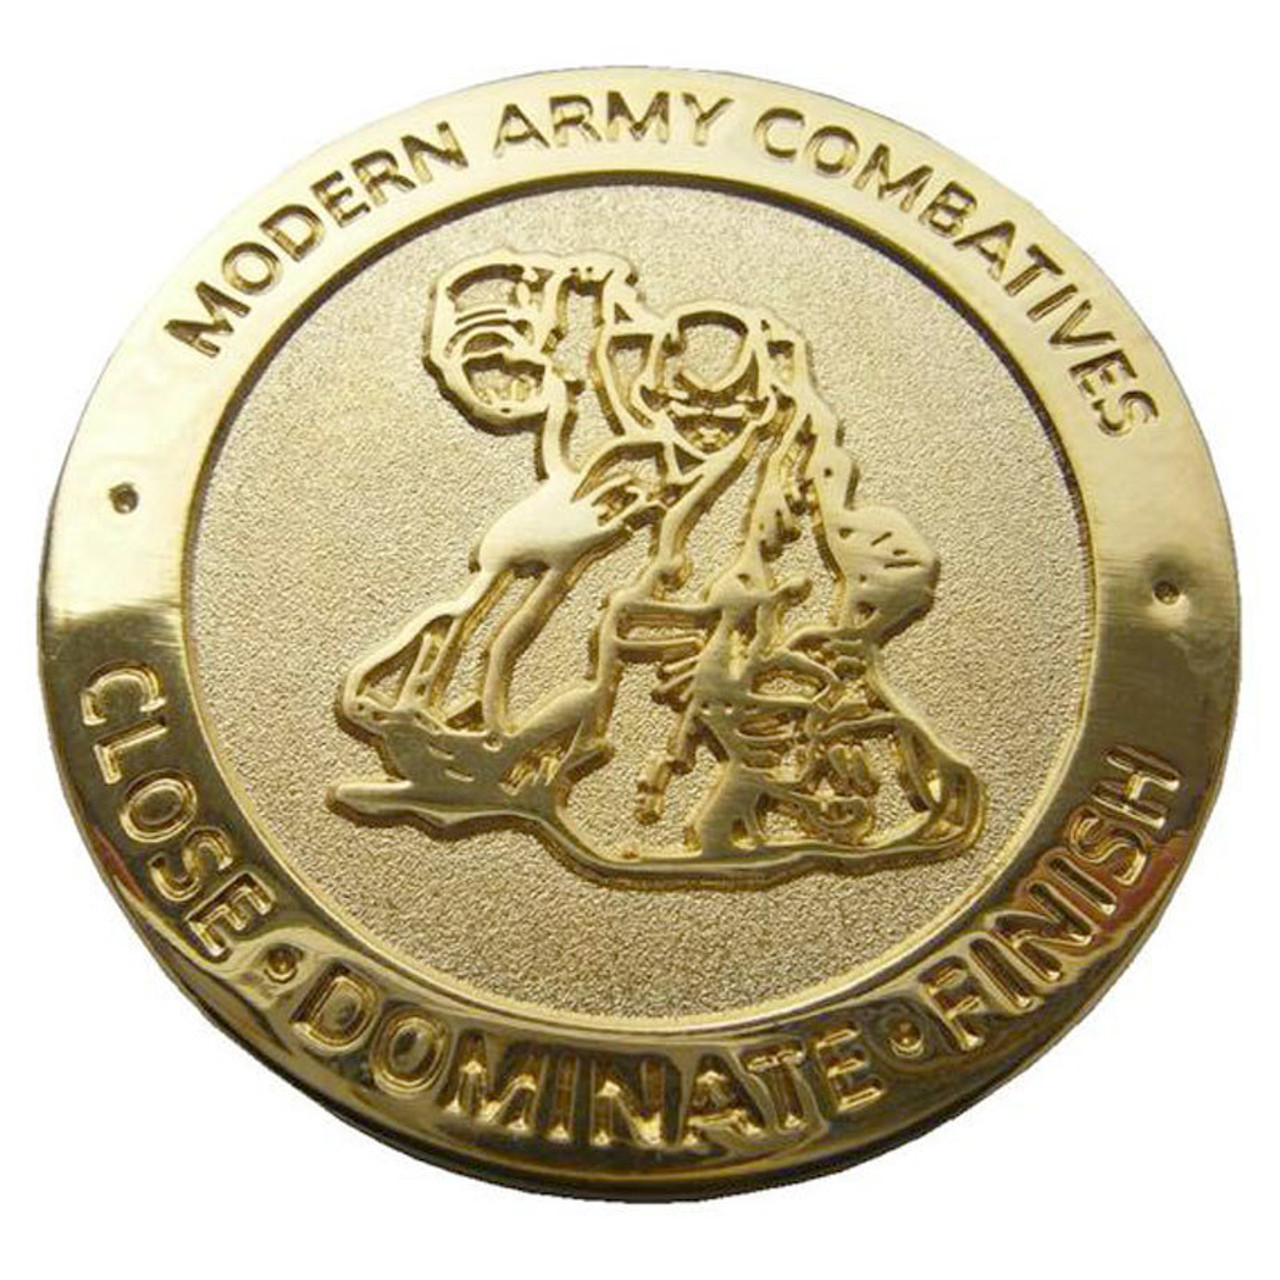 Small Army Combatives Challenge Coin 1 5